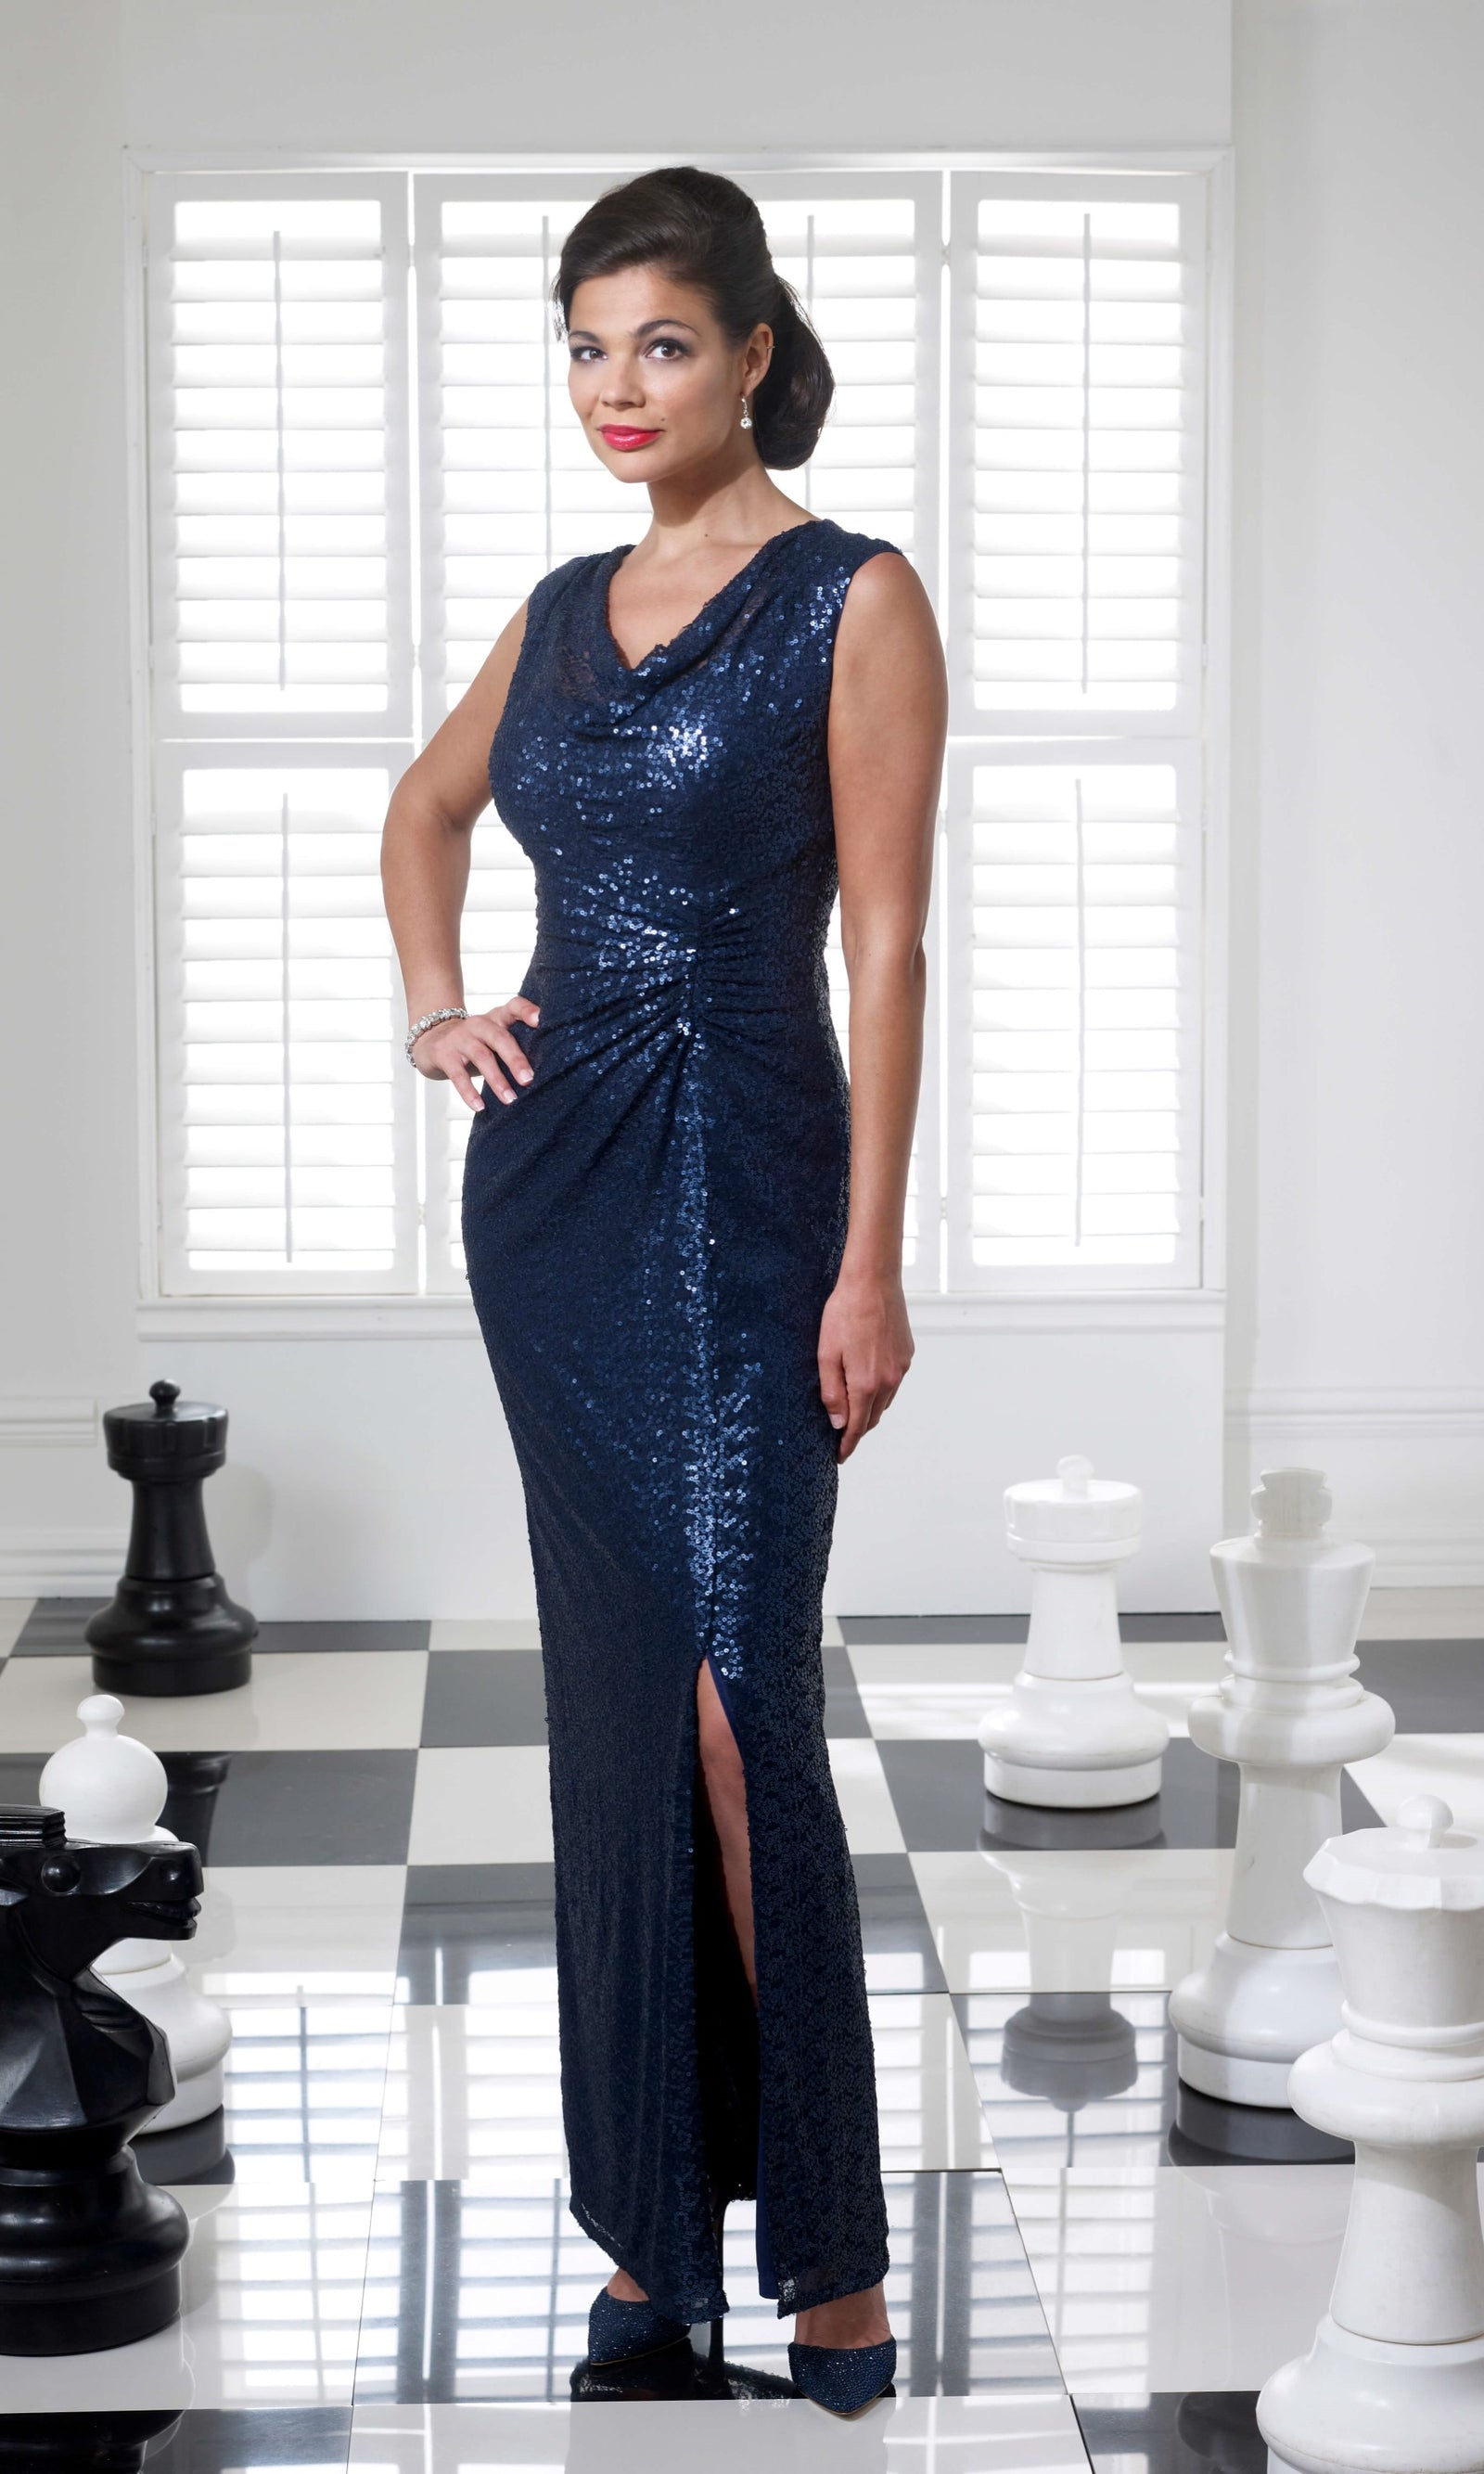 VO3743 Navy Veromia Occasions Sequin Long Evening Dress - Fab Frocks